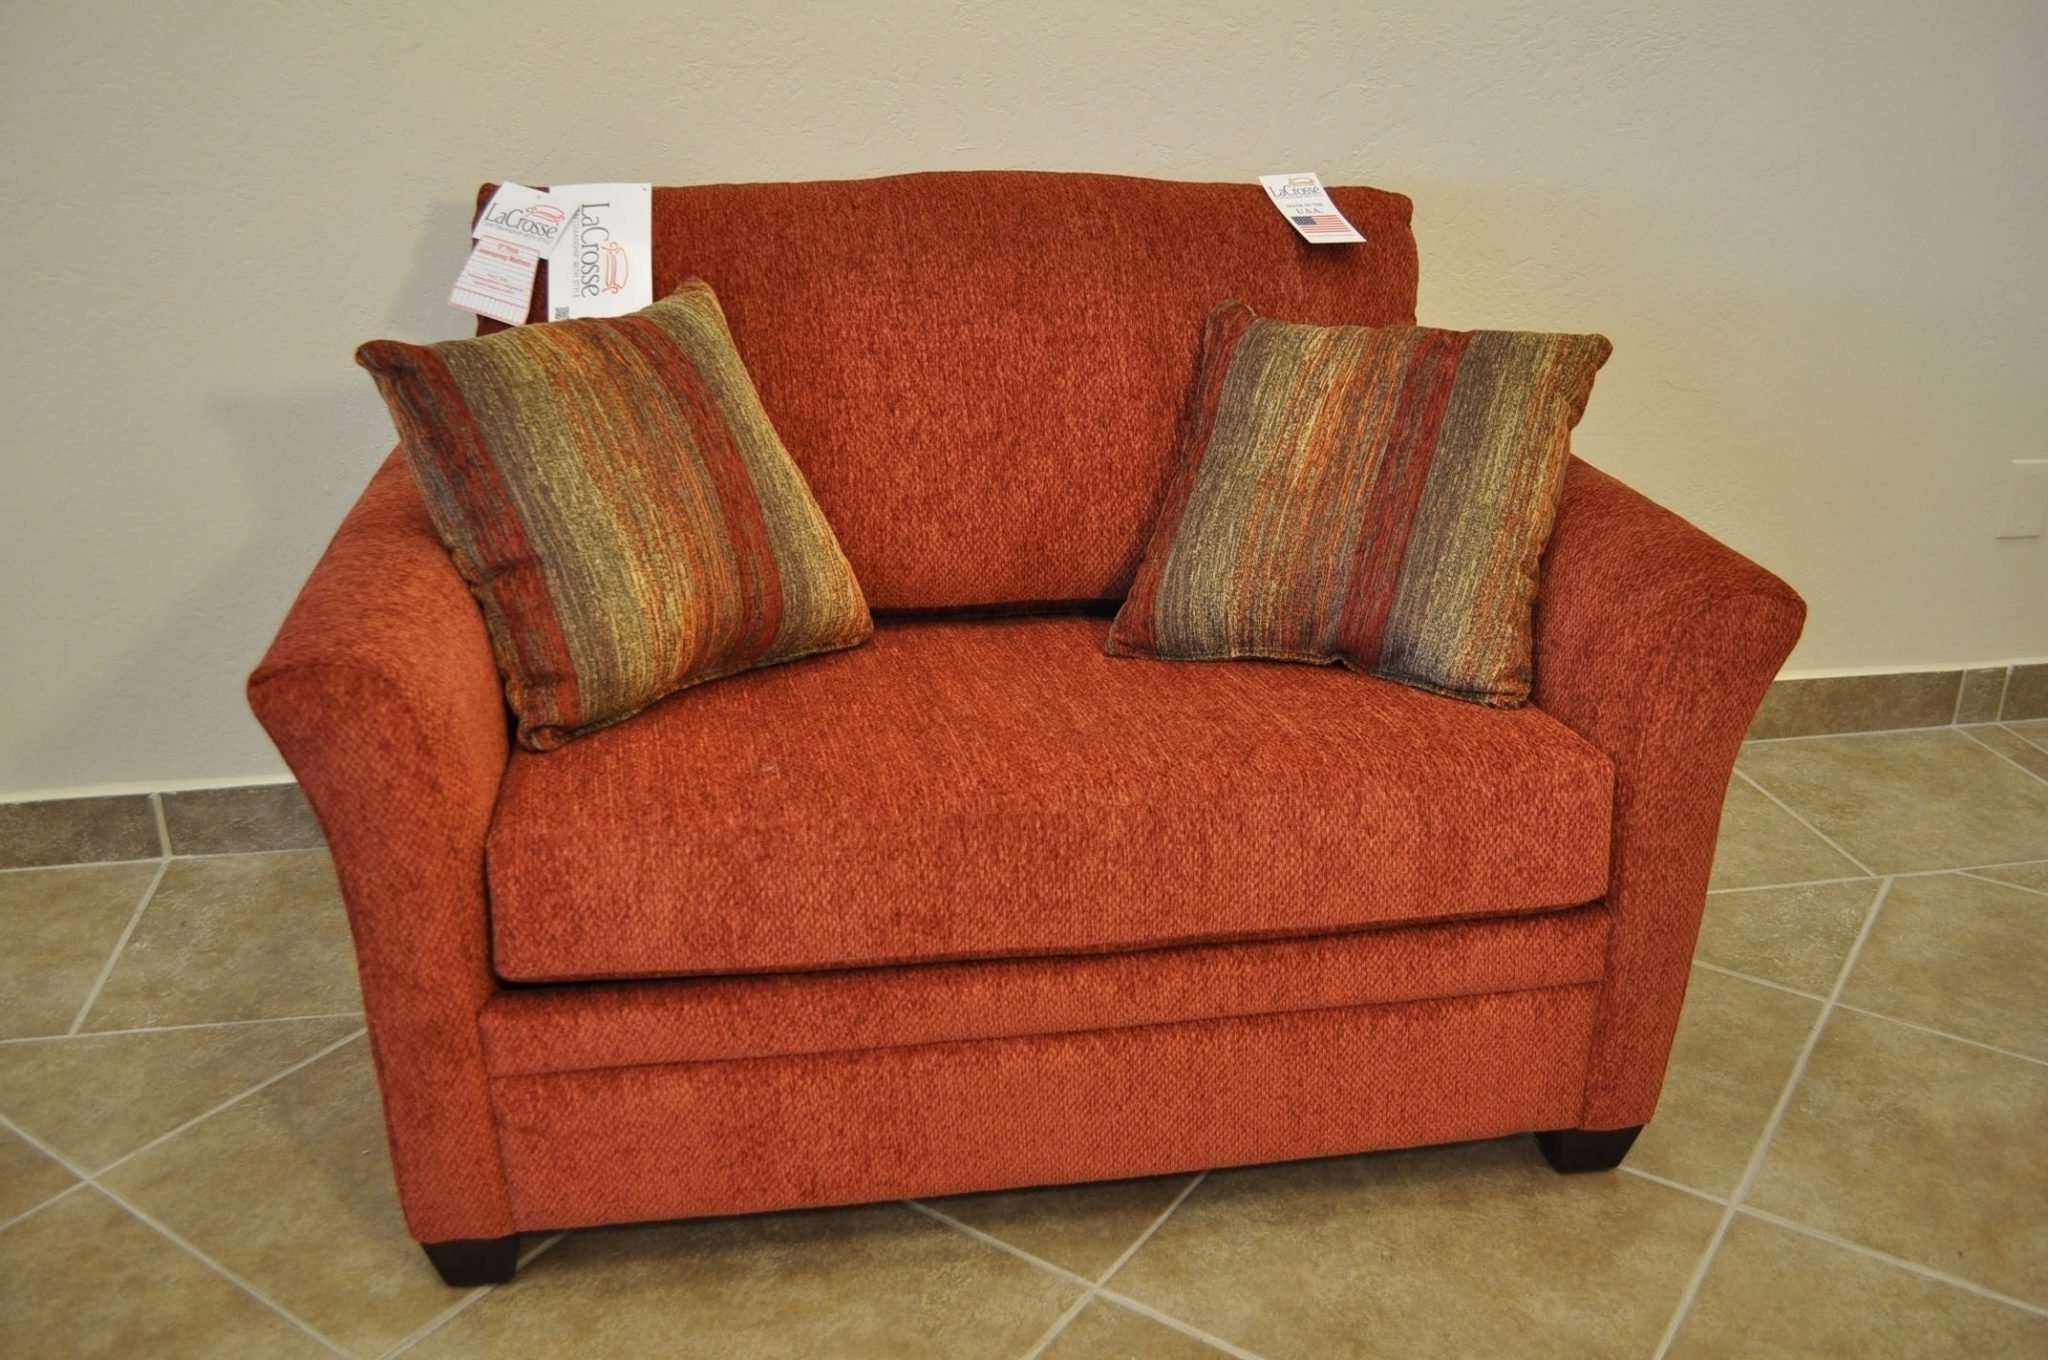 2018 Furniture Fancy Sleeper Sofa Ikea For Your Best Living Room In With Ikea Loveseat Sleeper Sofas (View 11 of 15)